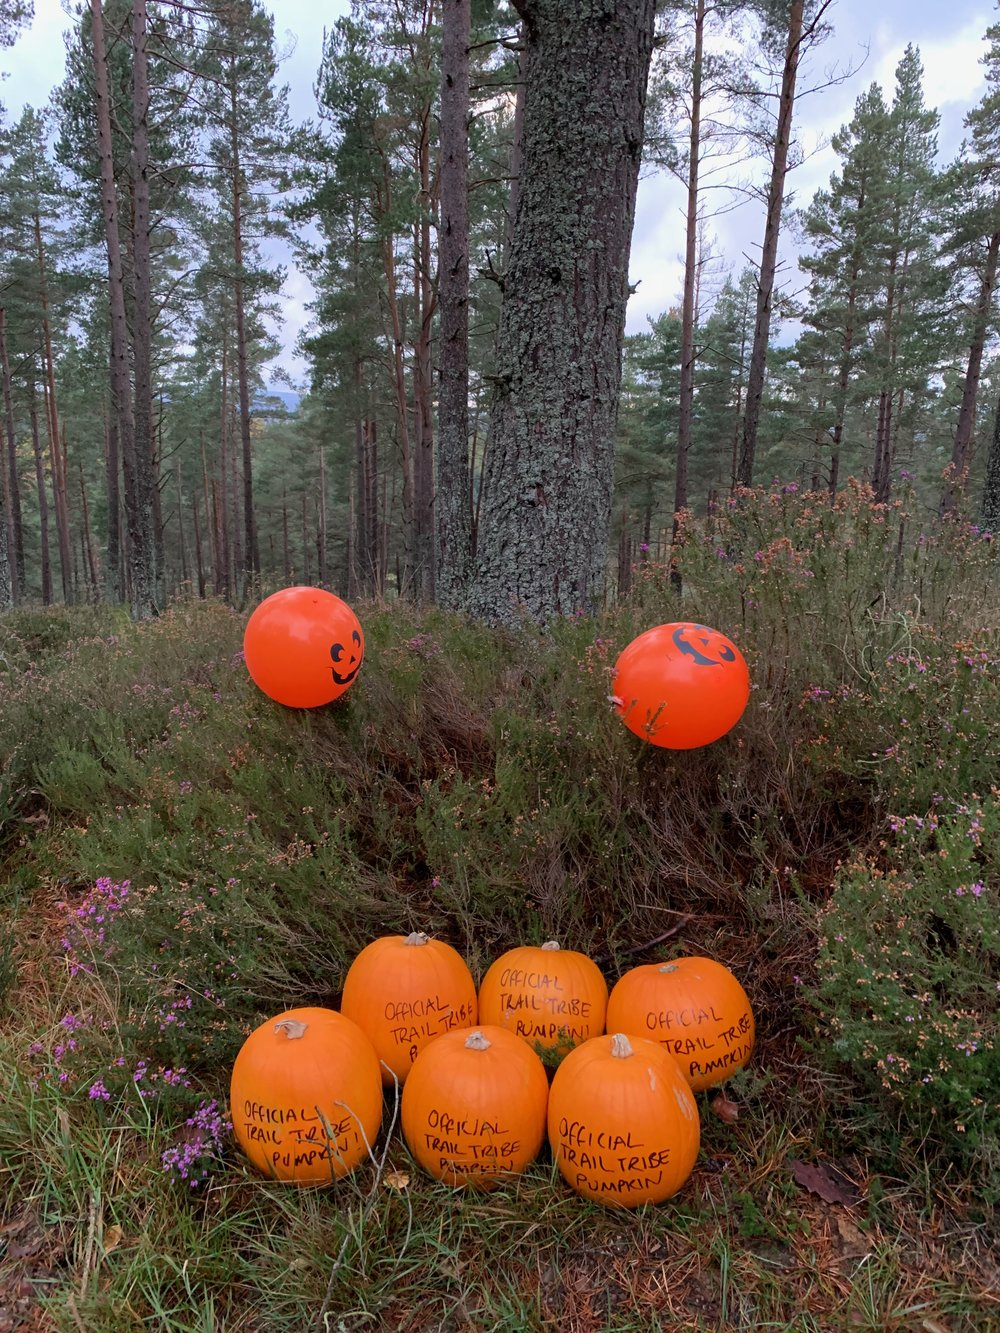 Official Trail Tribe Pumpkins! Also double as medicine balls!